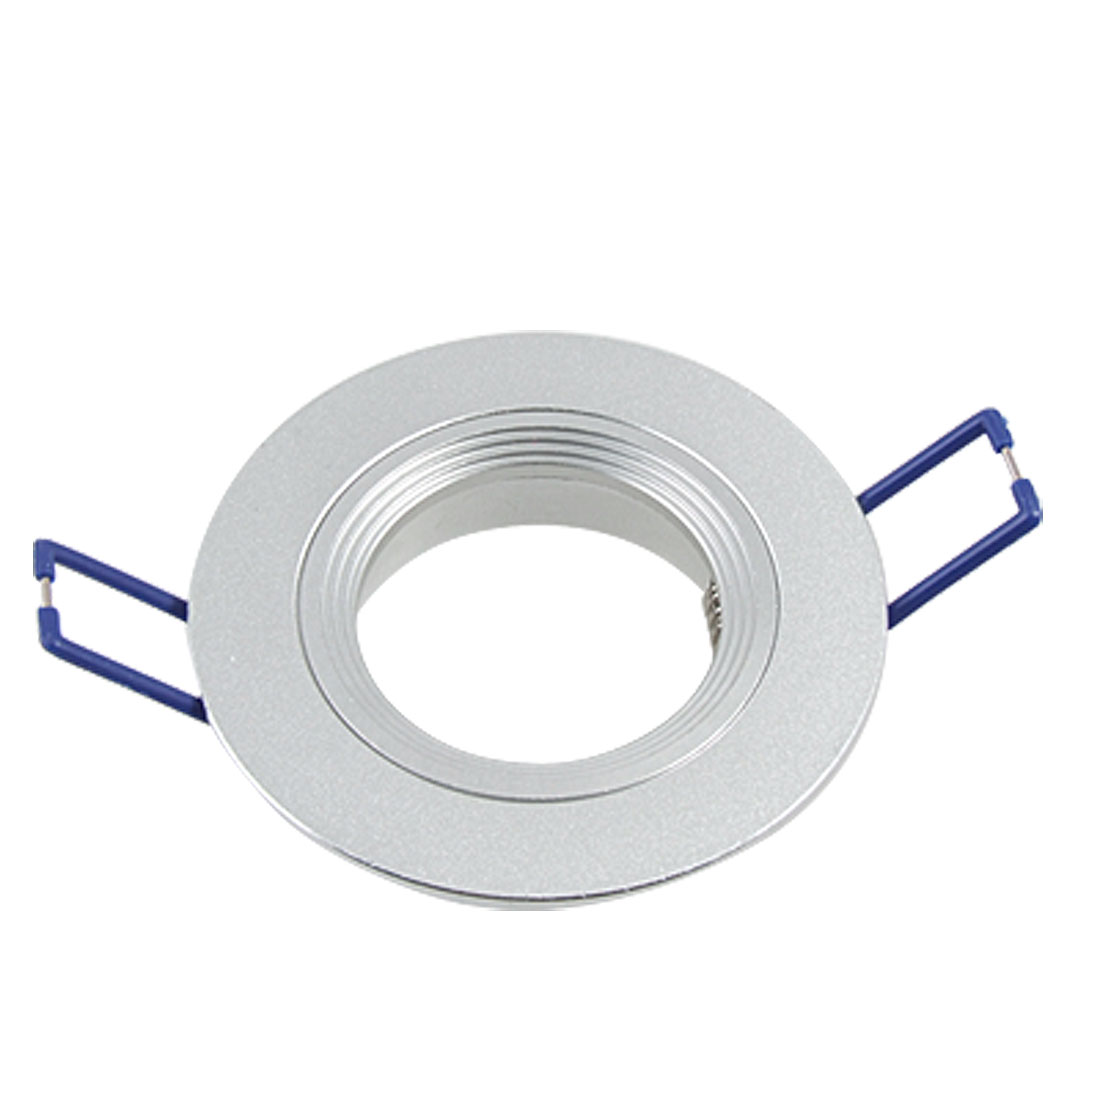 Ceiling Light Lamp Bracket Downlight Holder Support